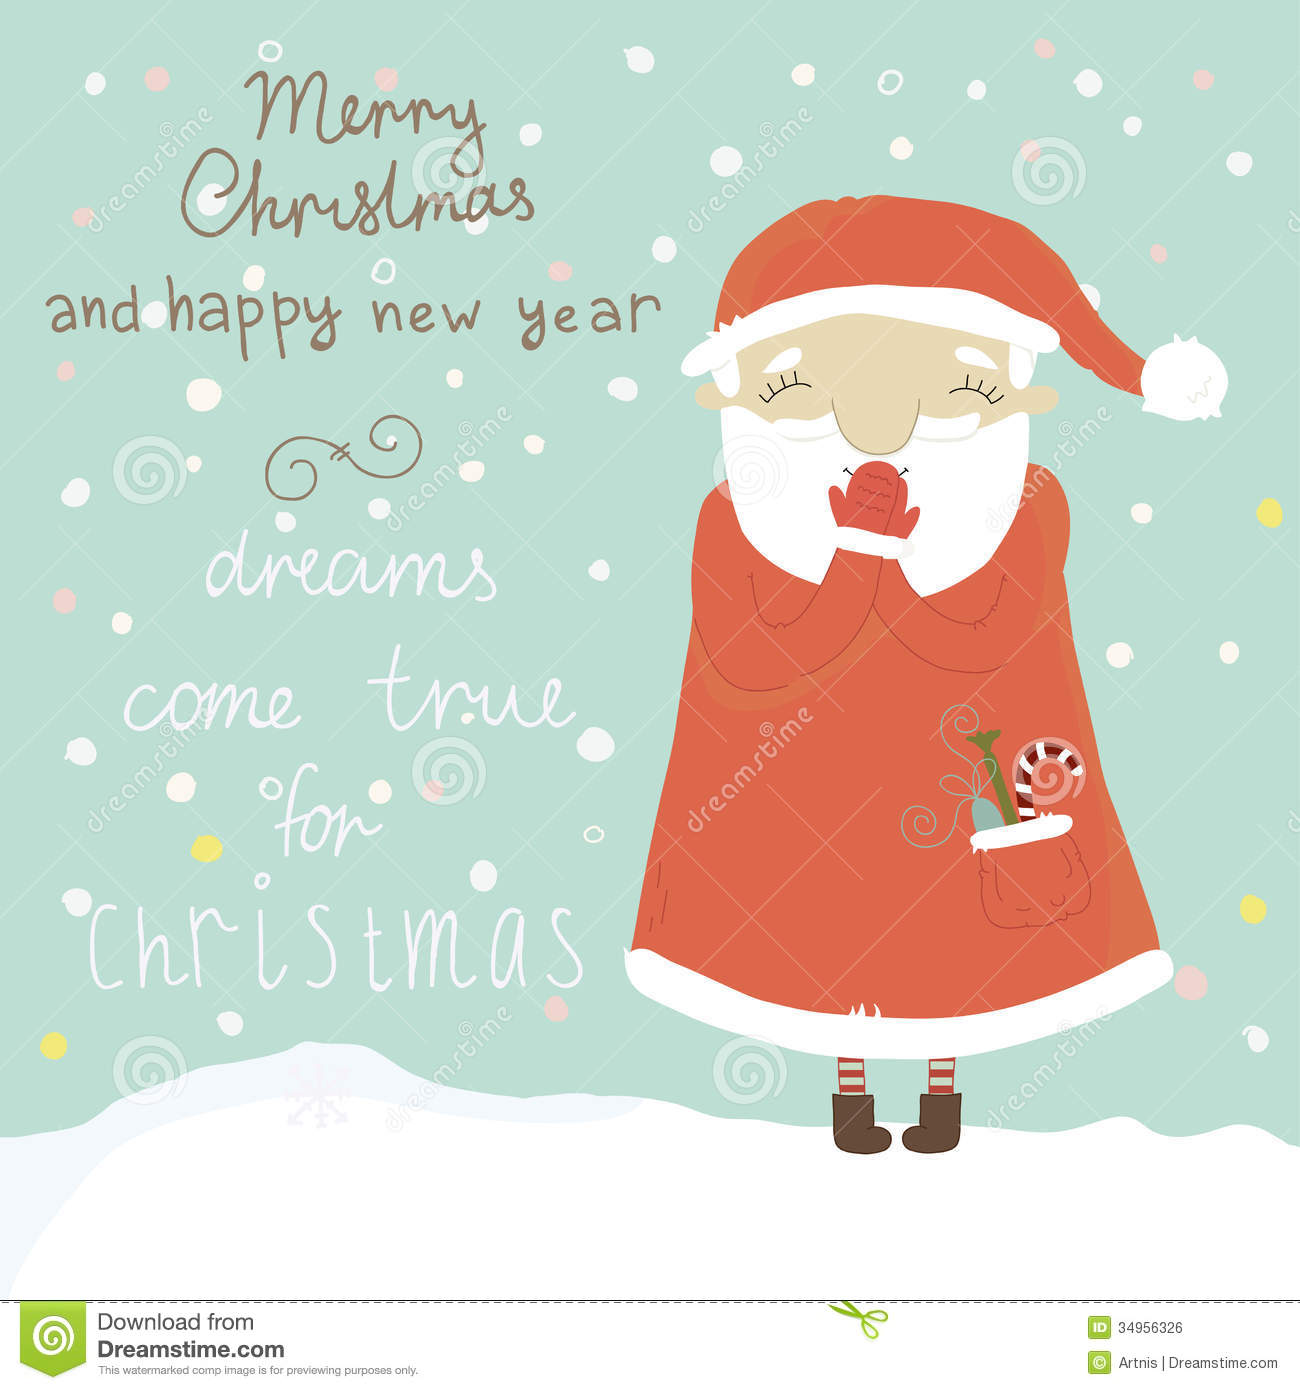 Christmas Greeting Card With Santa Claus Stock Vector - Illustration ...